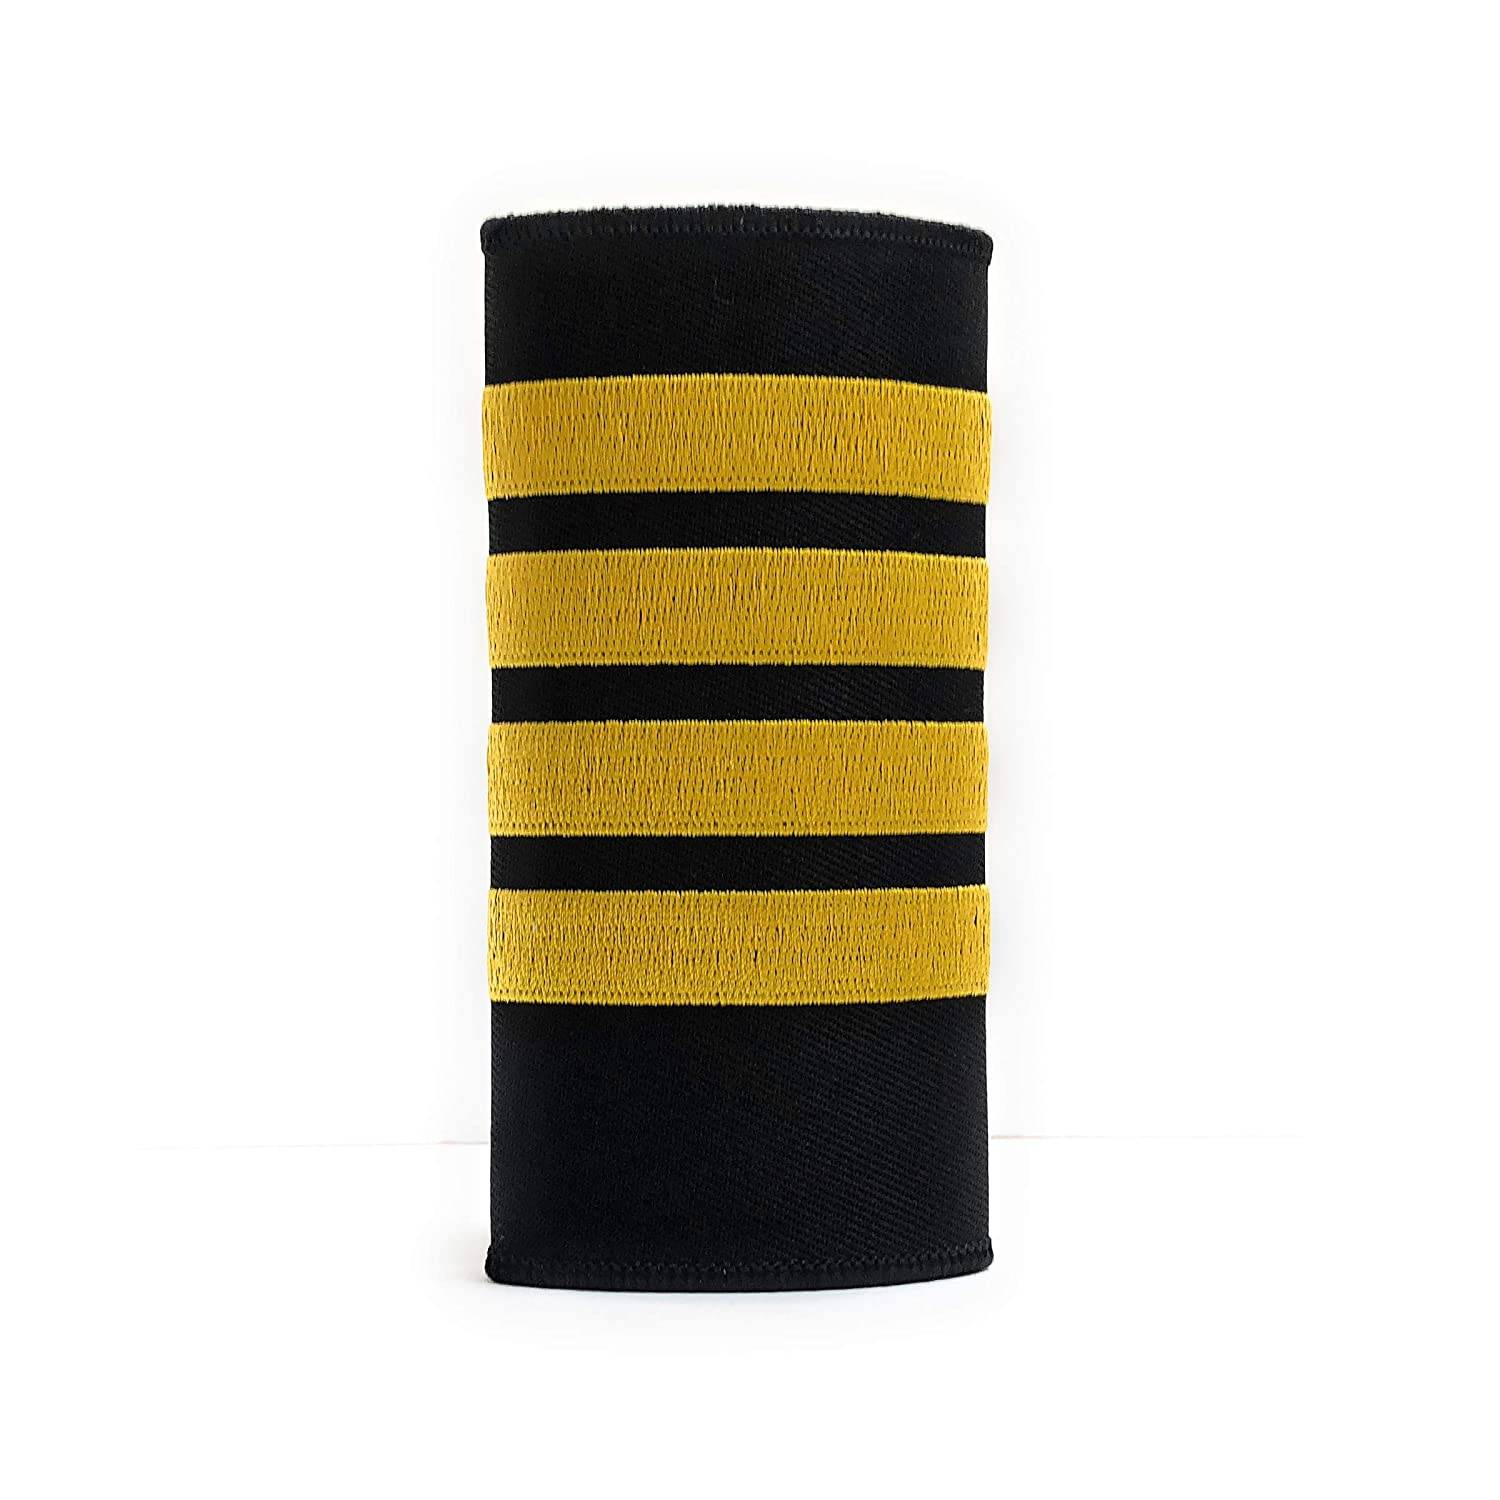 High Quality Captain Luggage Handle Wrap with 4 Gold Stripes aviamart/®